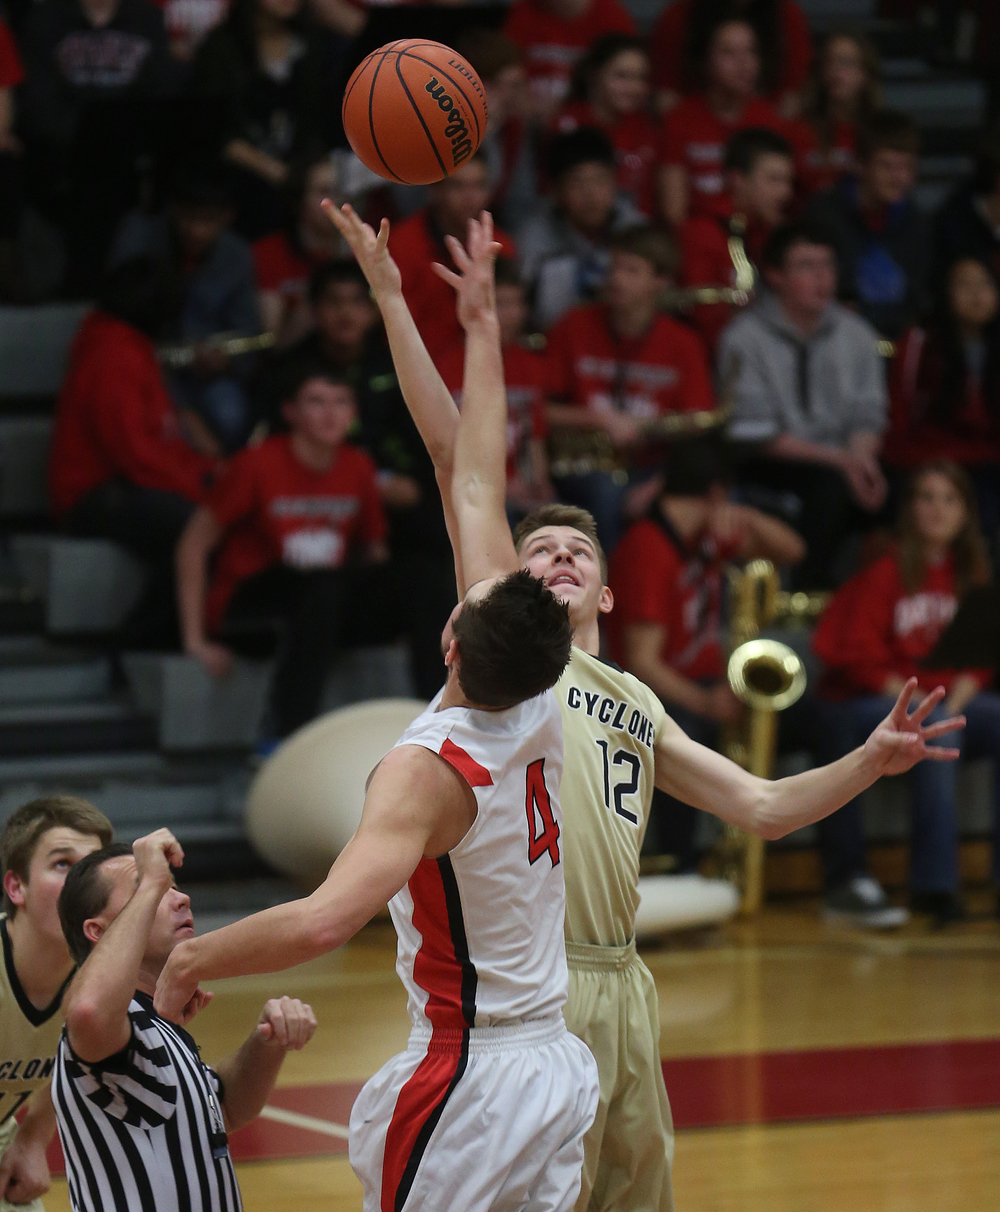 Tipping off at the start of the game was Cyclones player Sean McDonald and Glenwood's Sam Anderson. Chatham Glenwood defeated Sacred Heart Griffin 54-40 in boys basketball action at Glenwood High School on Friday evening, Dec. 12, 2014. David Spencer/The State Journal-Register